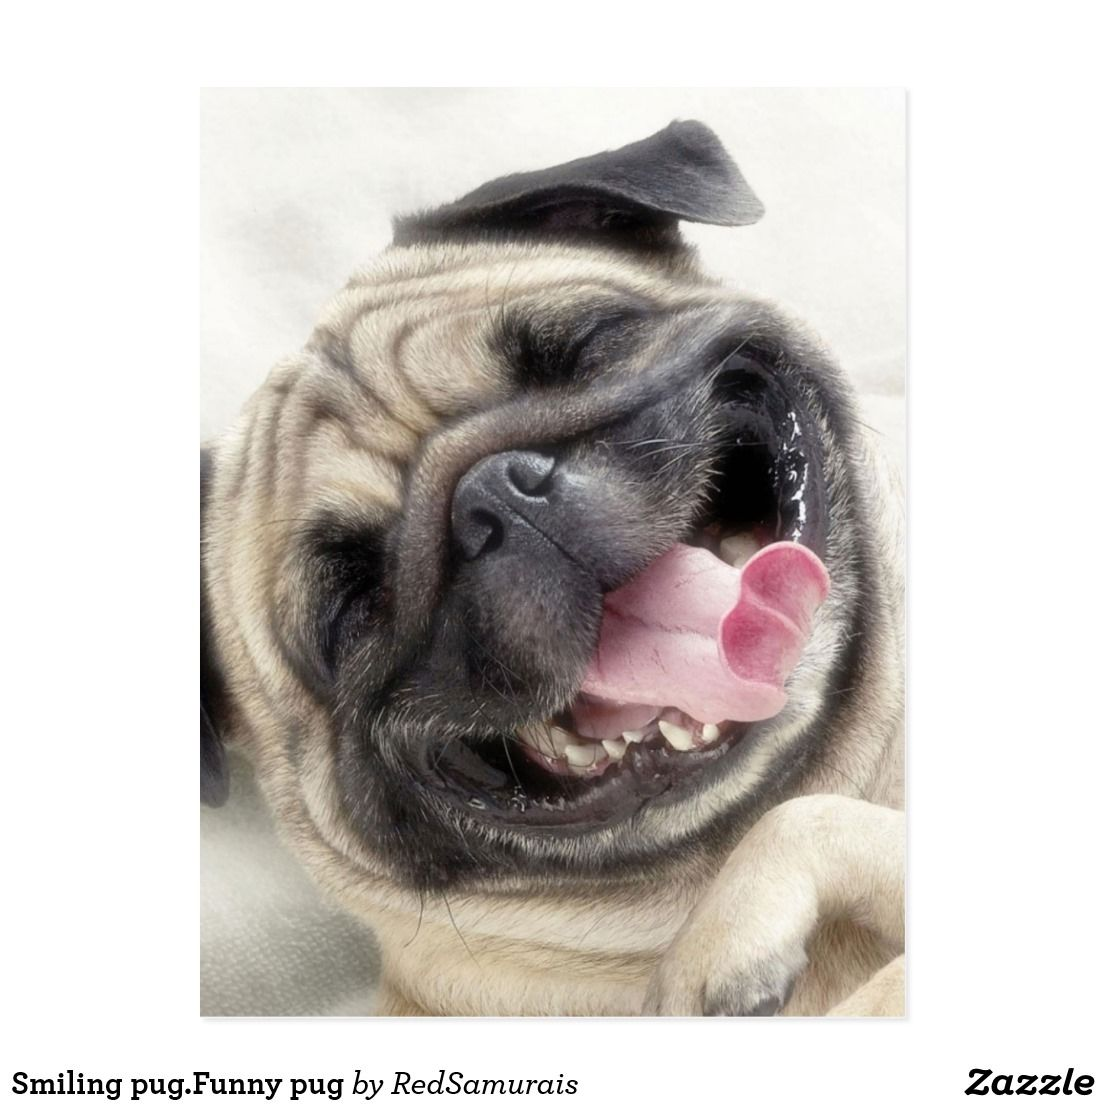 Smiling Pug Funny Pug Postcard Zazzle Com Pugs Funny Cute Pugs Puggle Puppies